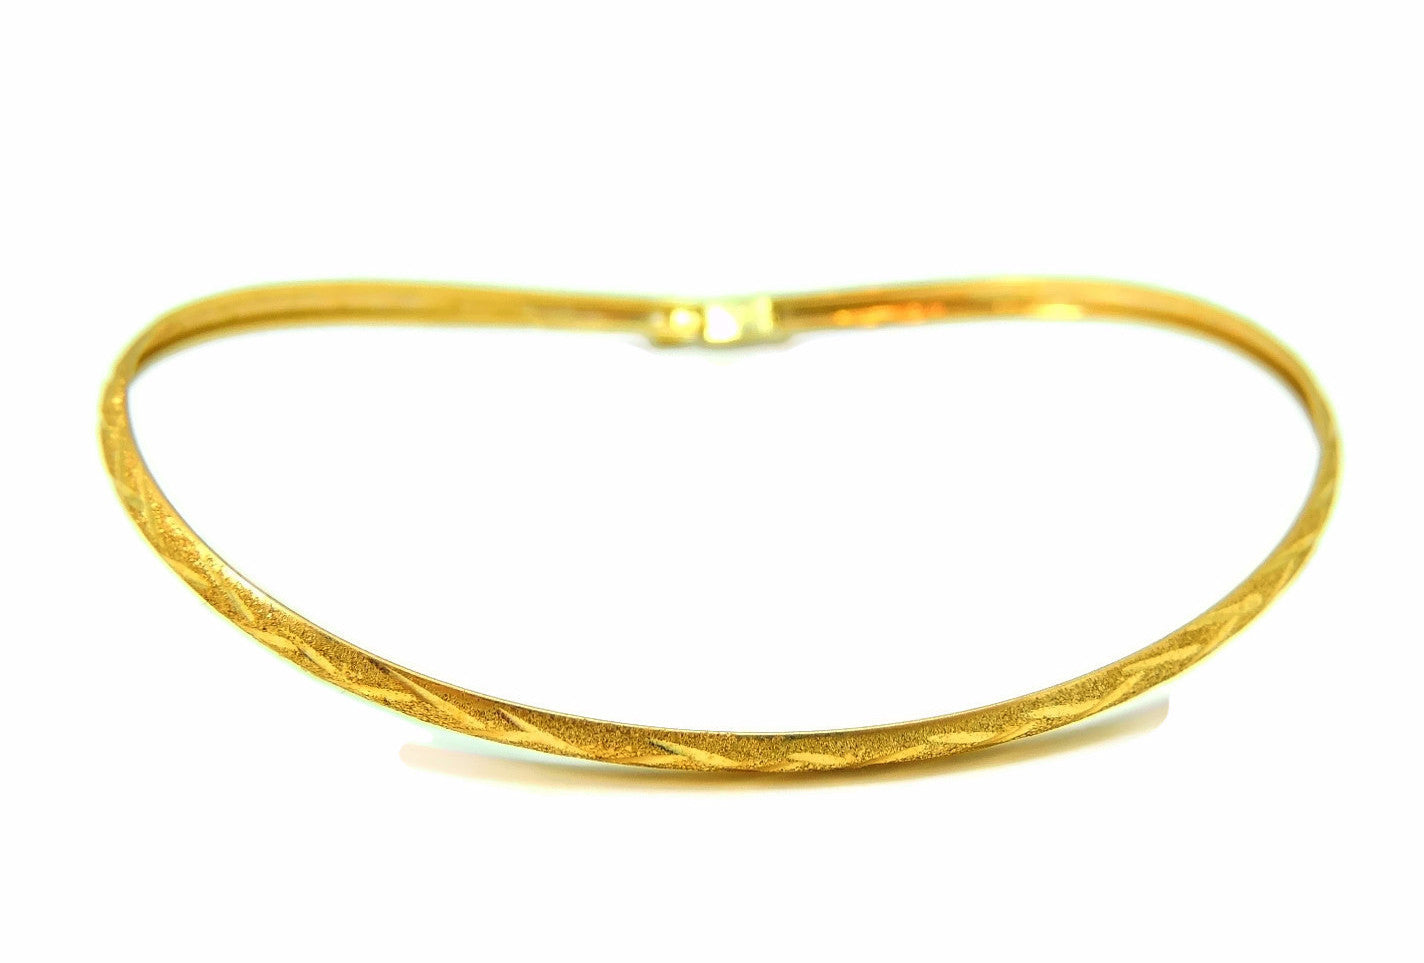 polished dp bangle yellow bangles jewelry amazon bracelet com gold